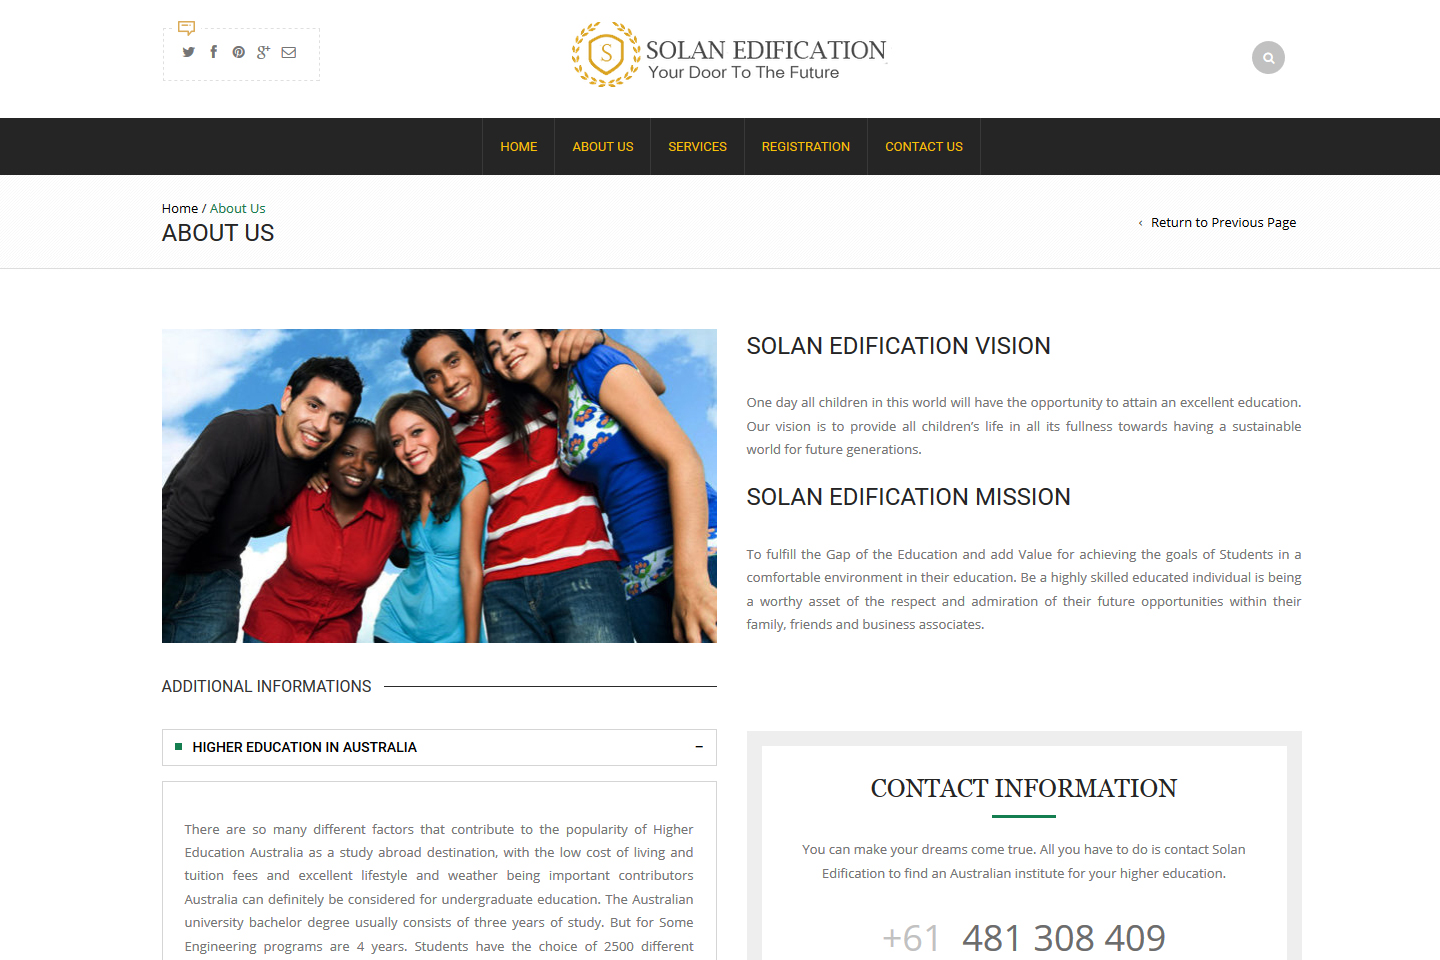 About Us Page Solan Edification